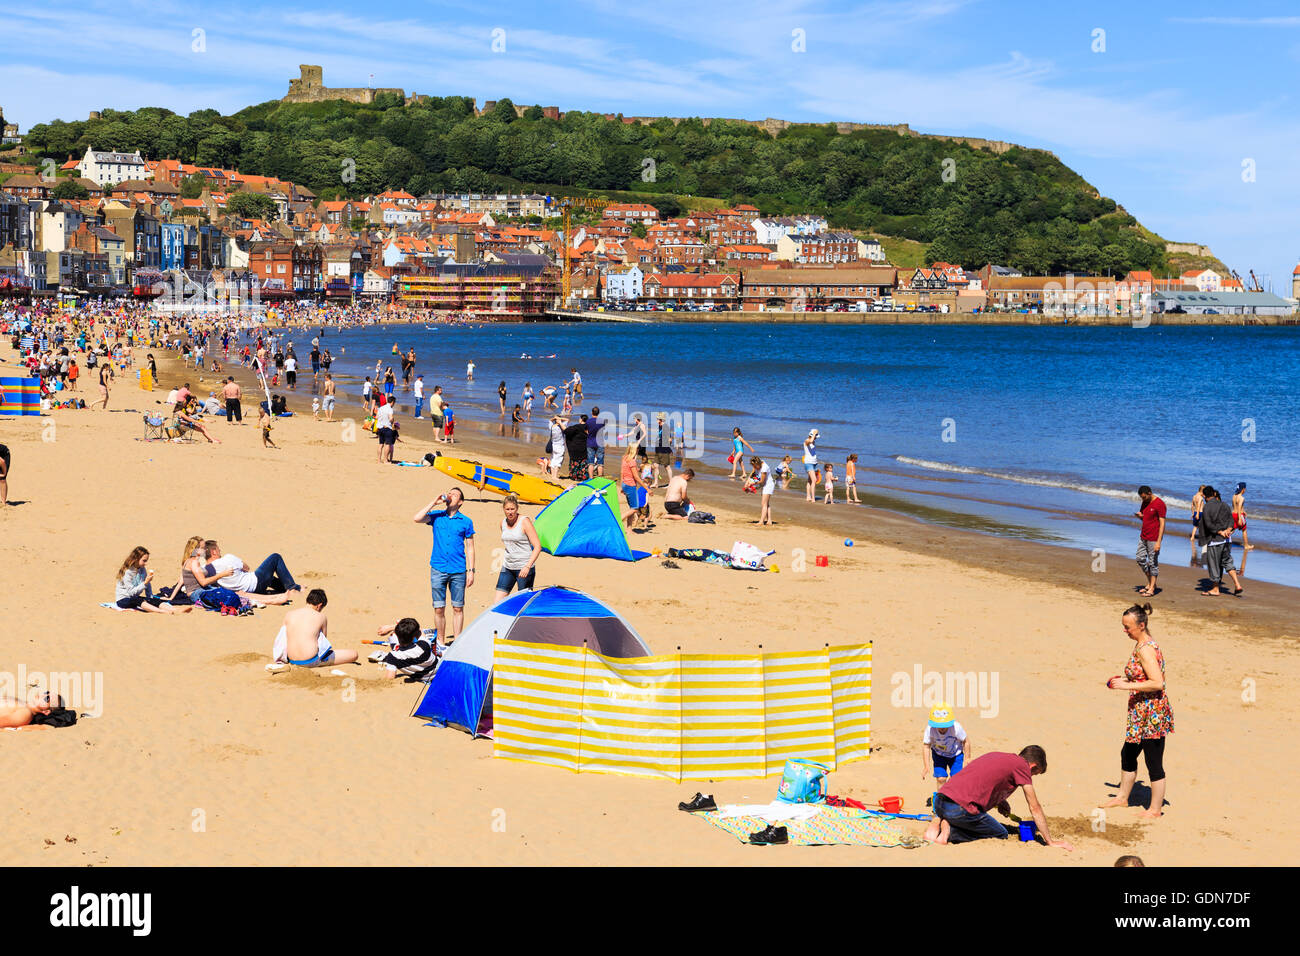 Lots of people enjoying Scarborough beach on a hot summer day. - Stock Image